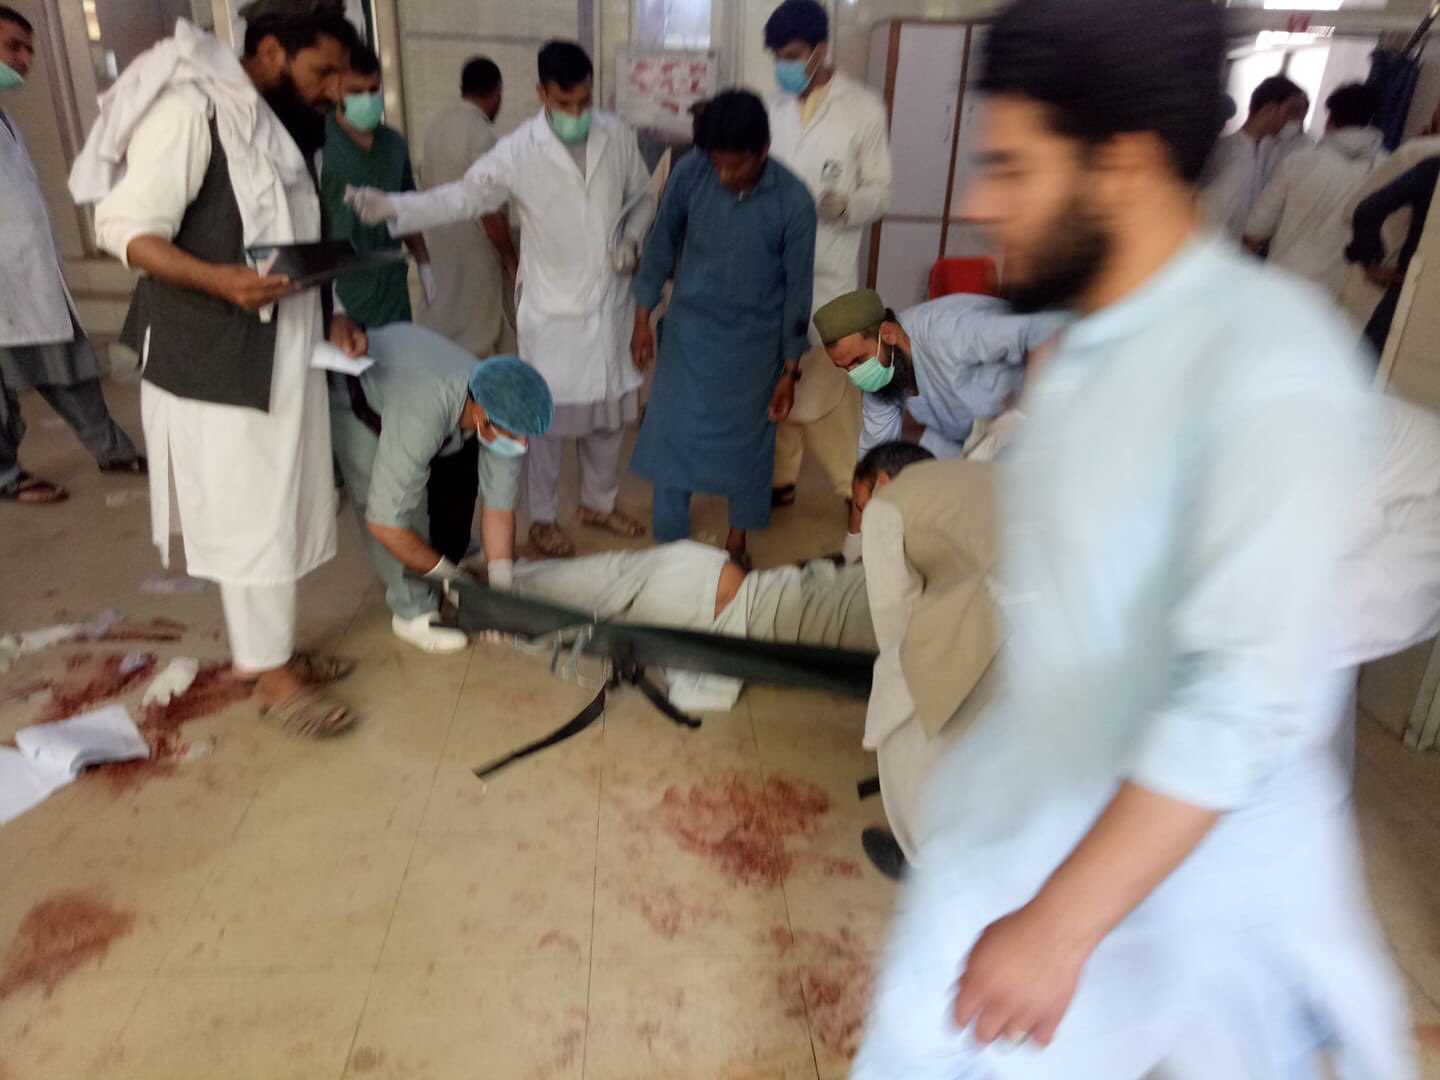 afganistan terror attacks may 12 2020 funeral maternity hospital ISIS Pakistan Afghanistan Kabul new born babies mothers killed terrorists